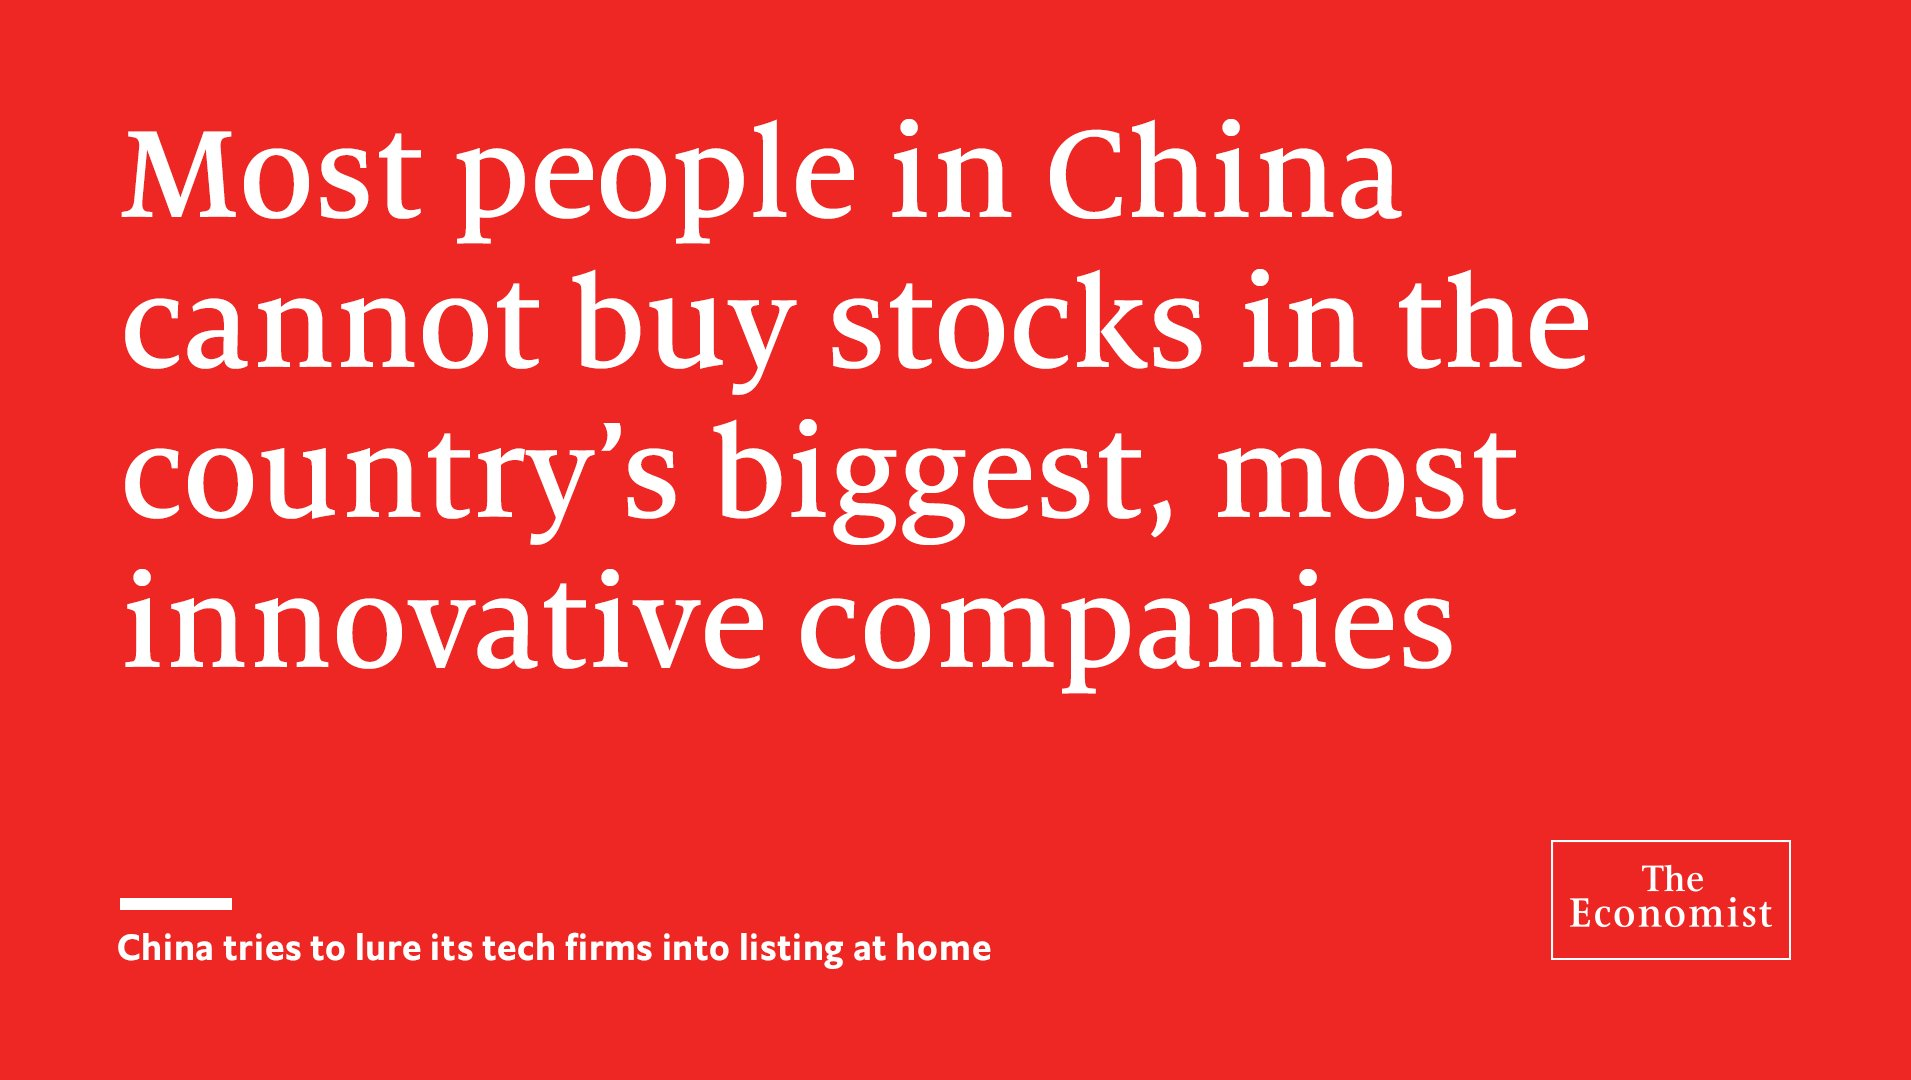 There are pros and cons to listing in China but the political imperative trumps all https://t.co/blL0eguMZV https://t.co/IrmeqF496O